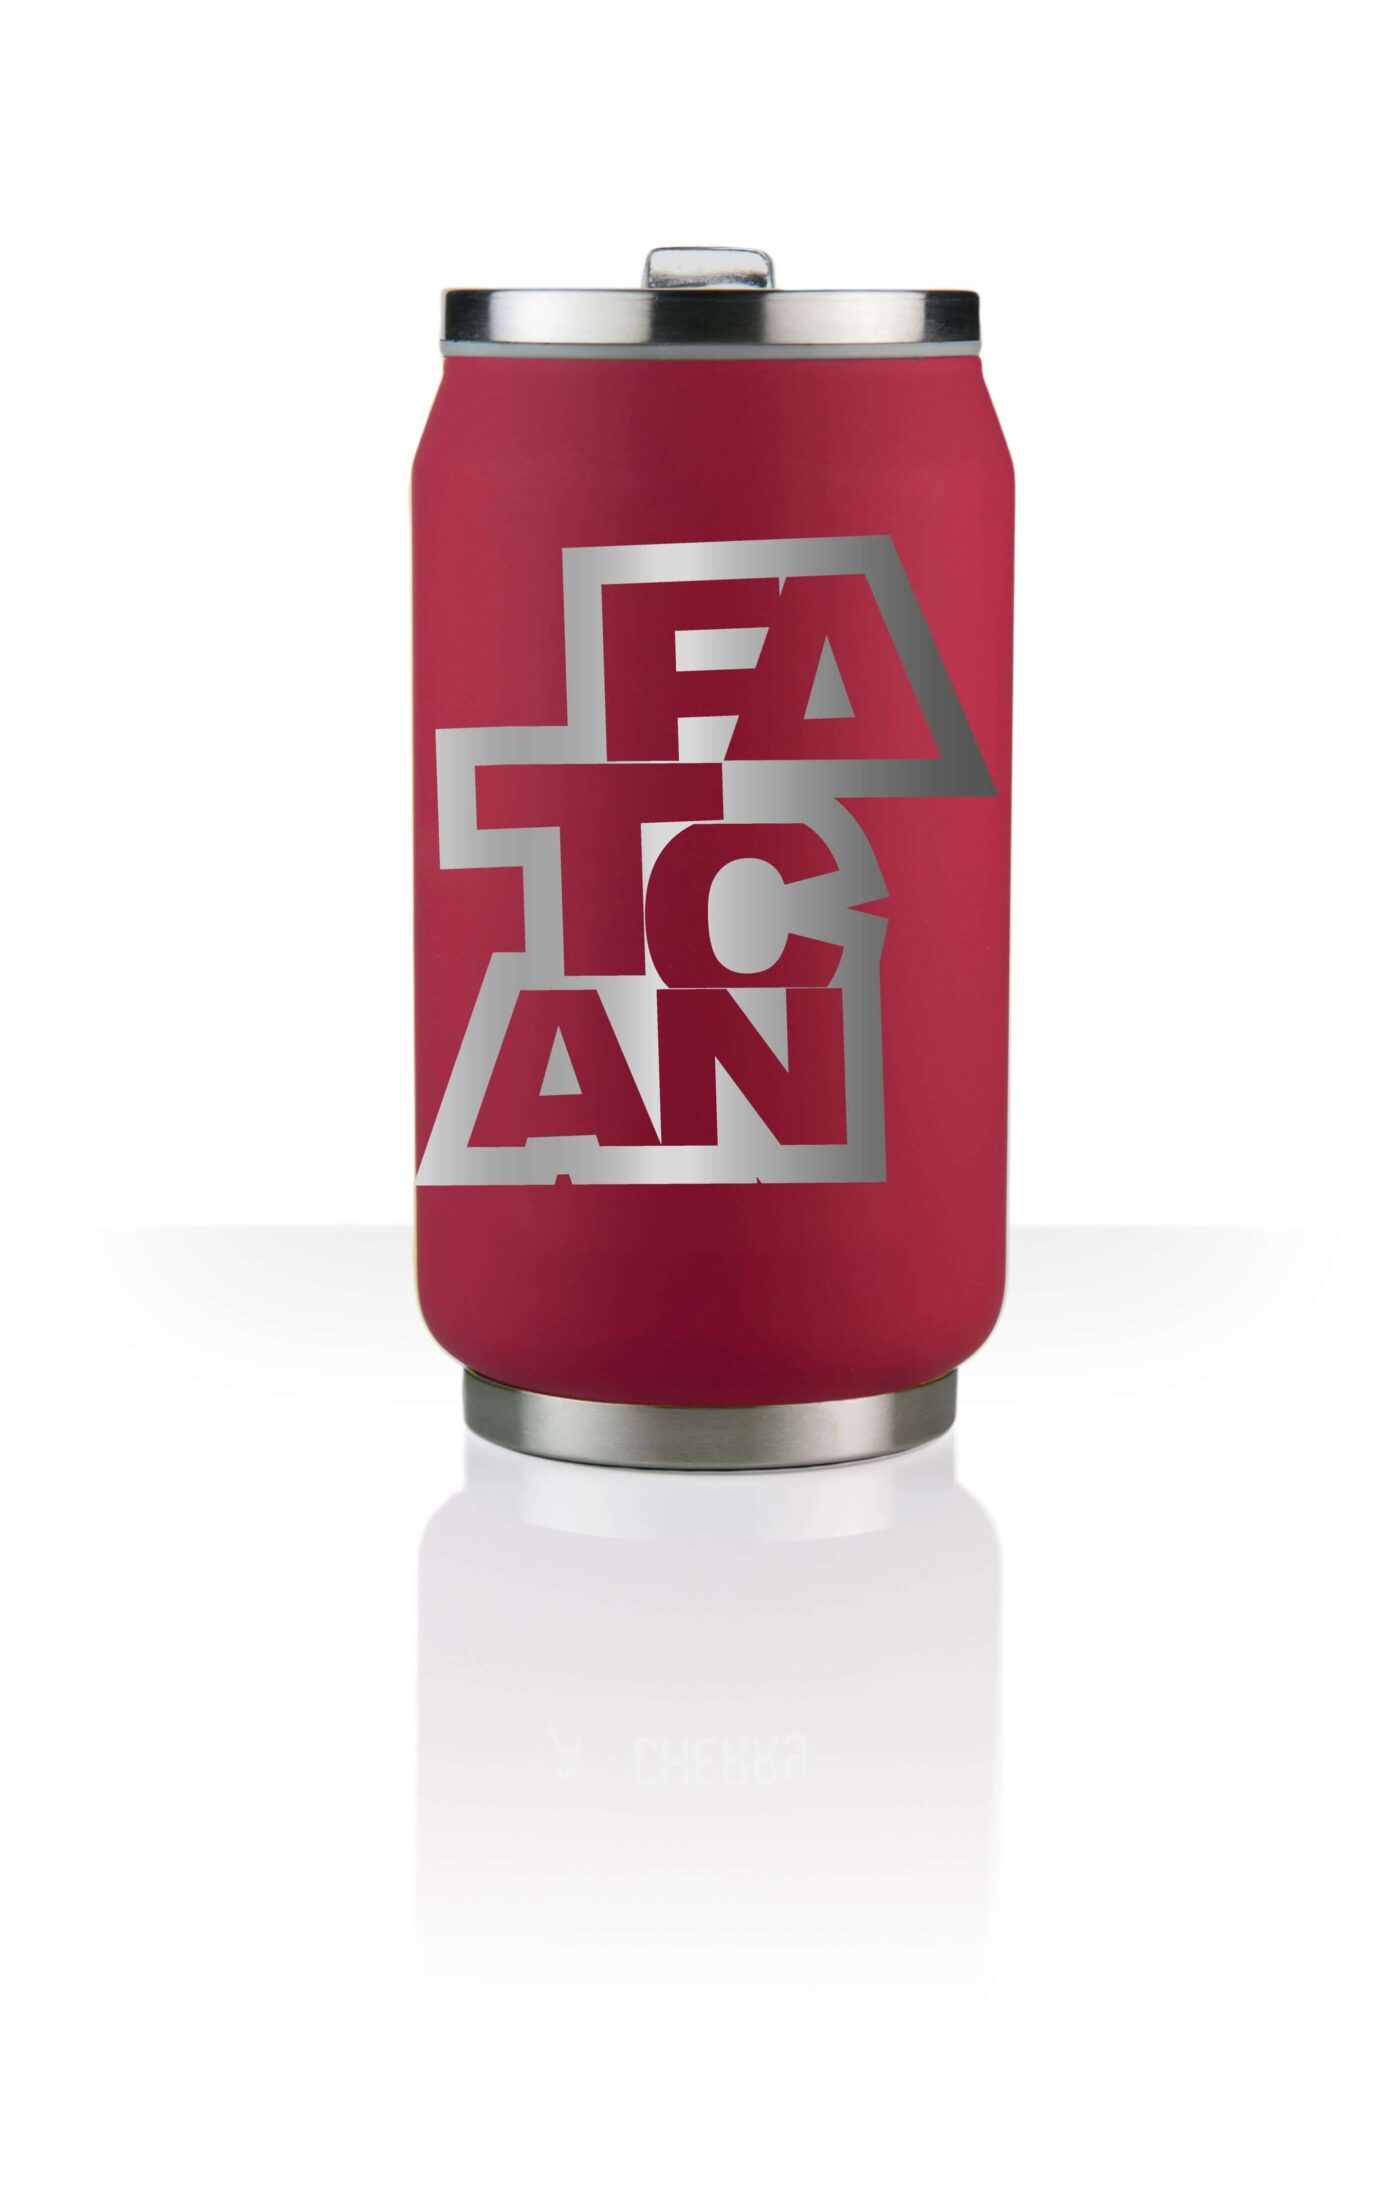 FATCAN_cherry_matt_025